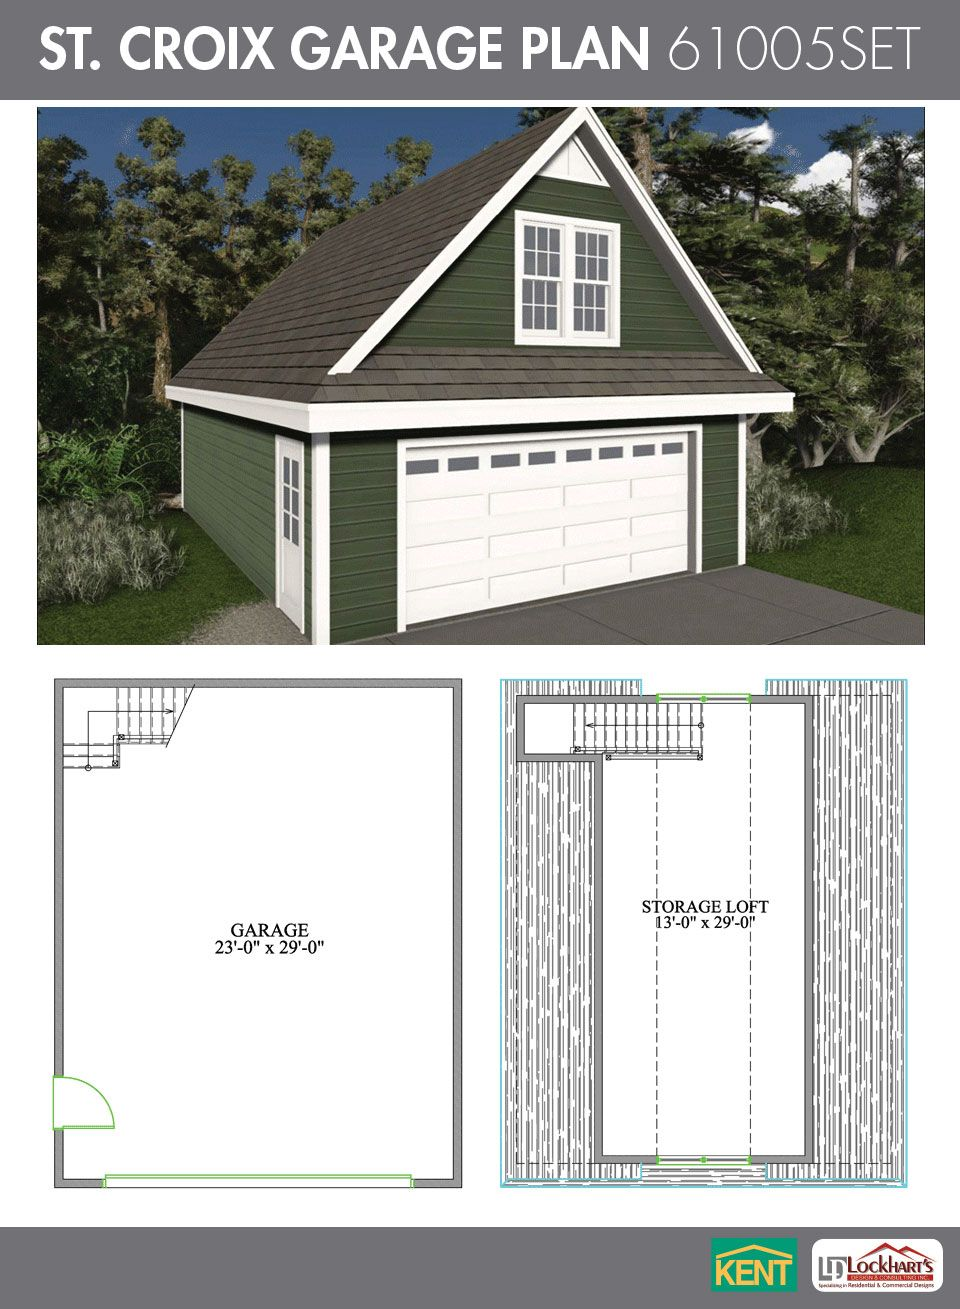 St croix garage plan 24 39 x 30 39 2 car garage 551 sq ft for Garage plans with bonus room